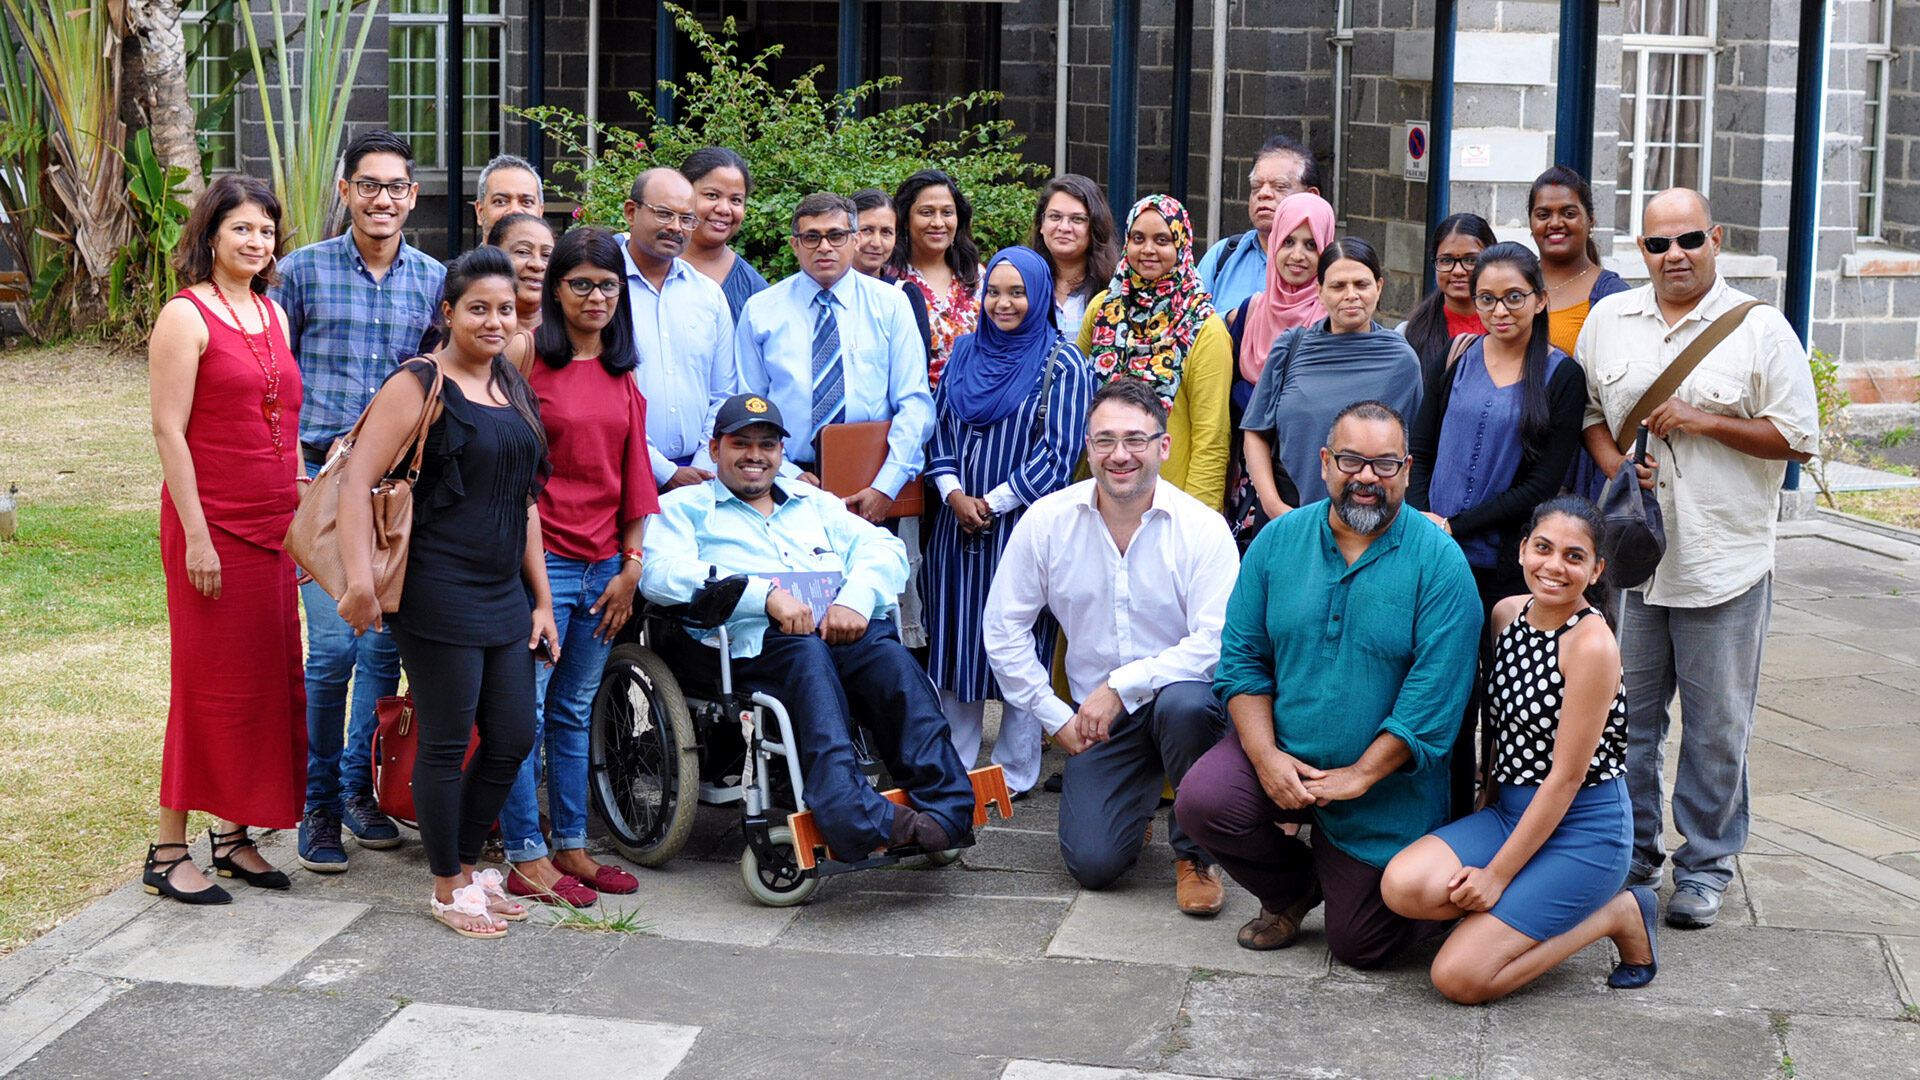 A group of people standing, sitting in wheelchairs or kneeling while smiling at the camera. They are a mixture of different races, skin colours, genders, ages and disabilities. They are in a bright, outdoor setting in front of a modern bricked building.Amongst them is Atif, CEO of Diversity and Ability, a brown man with short dark hair and glasses.